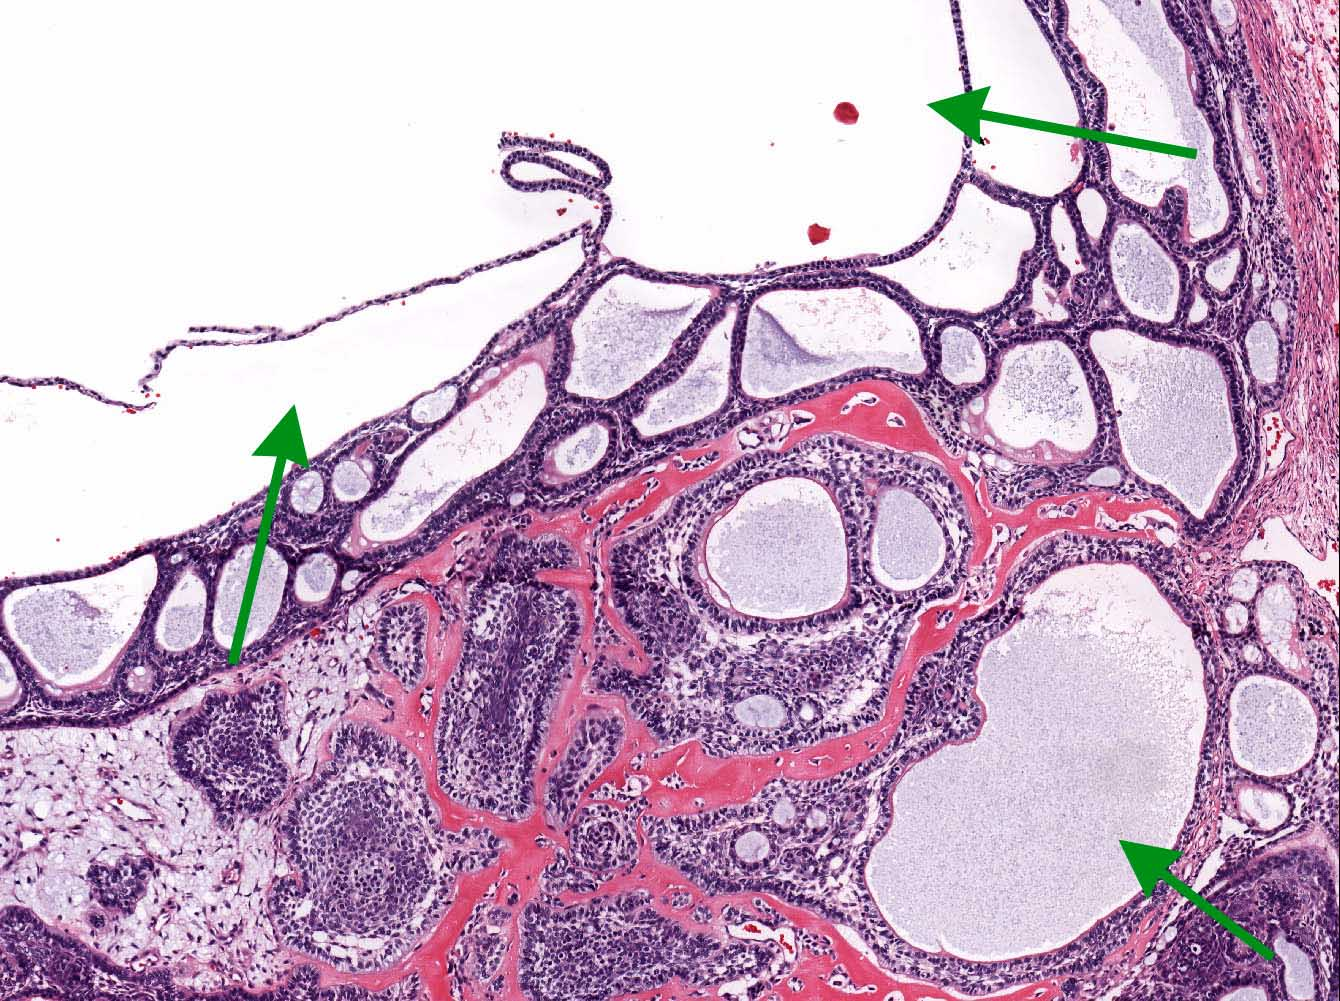 Microcyst formation